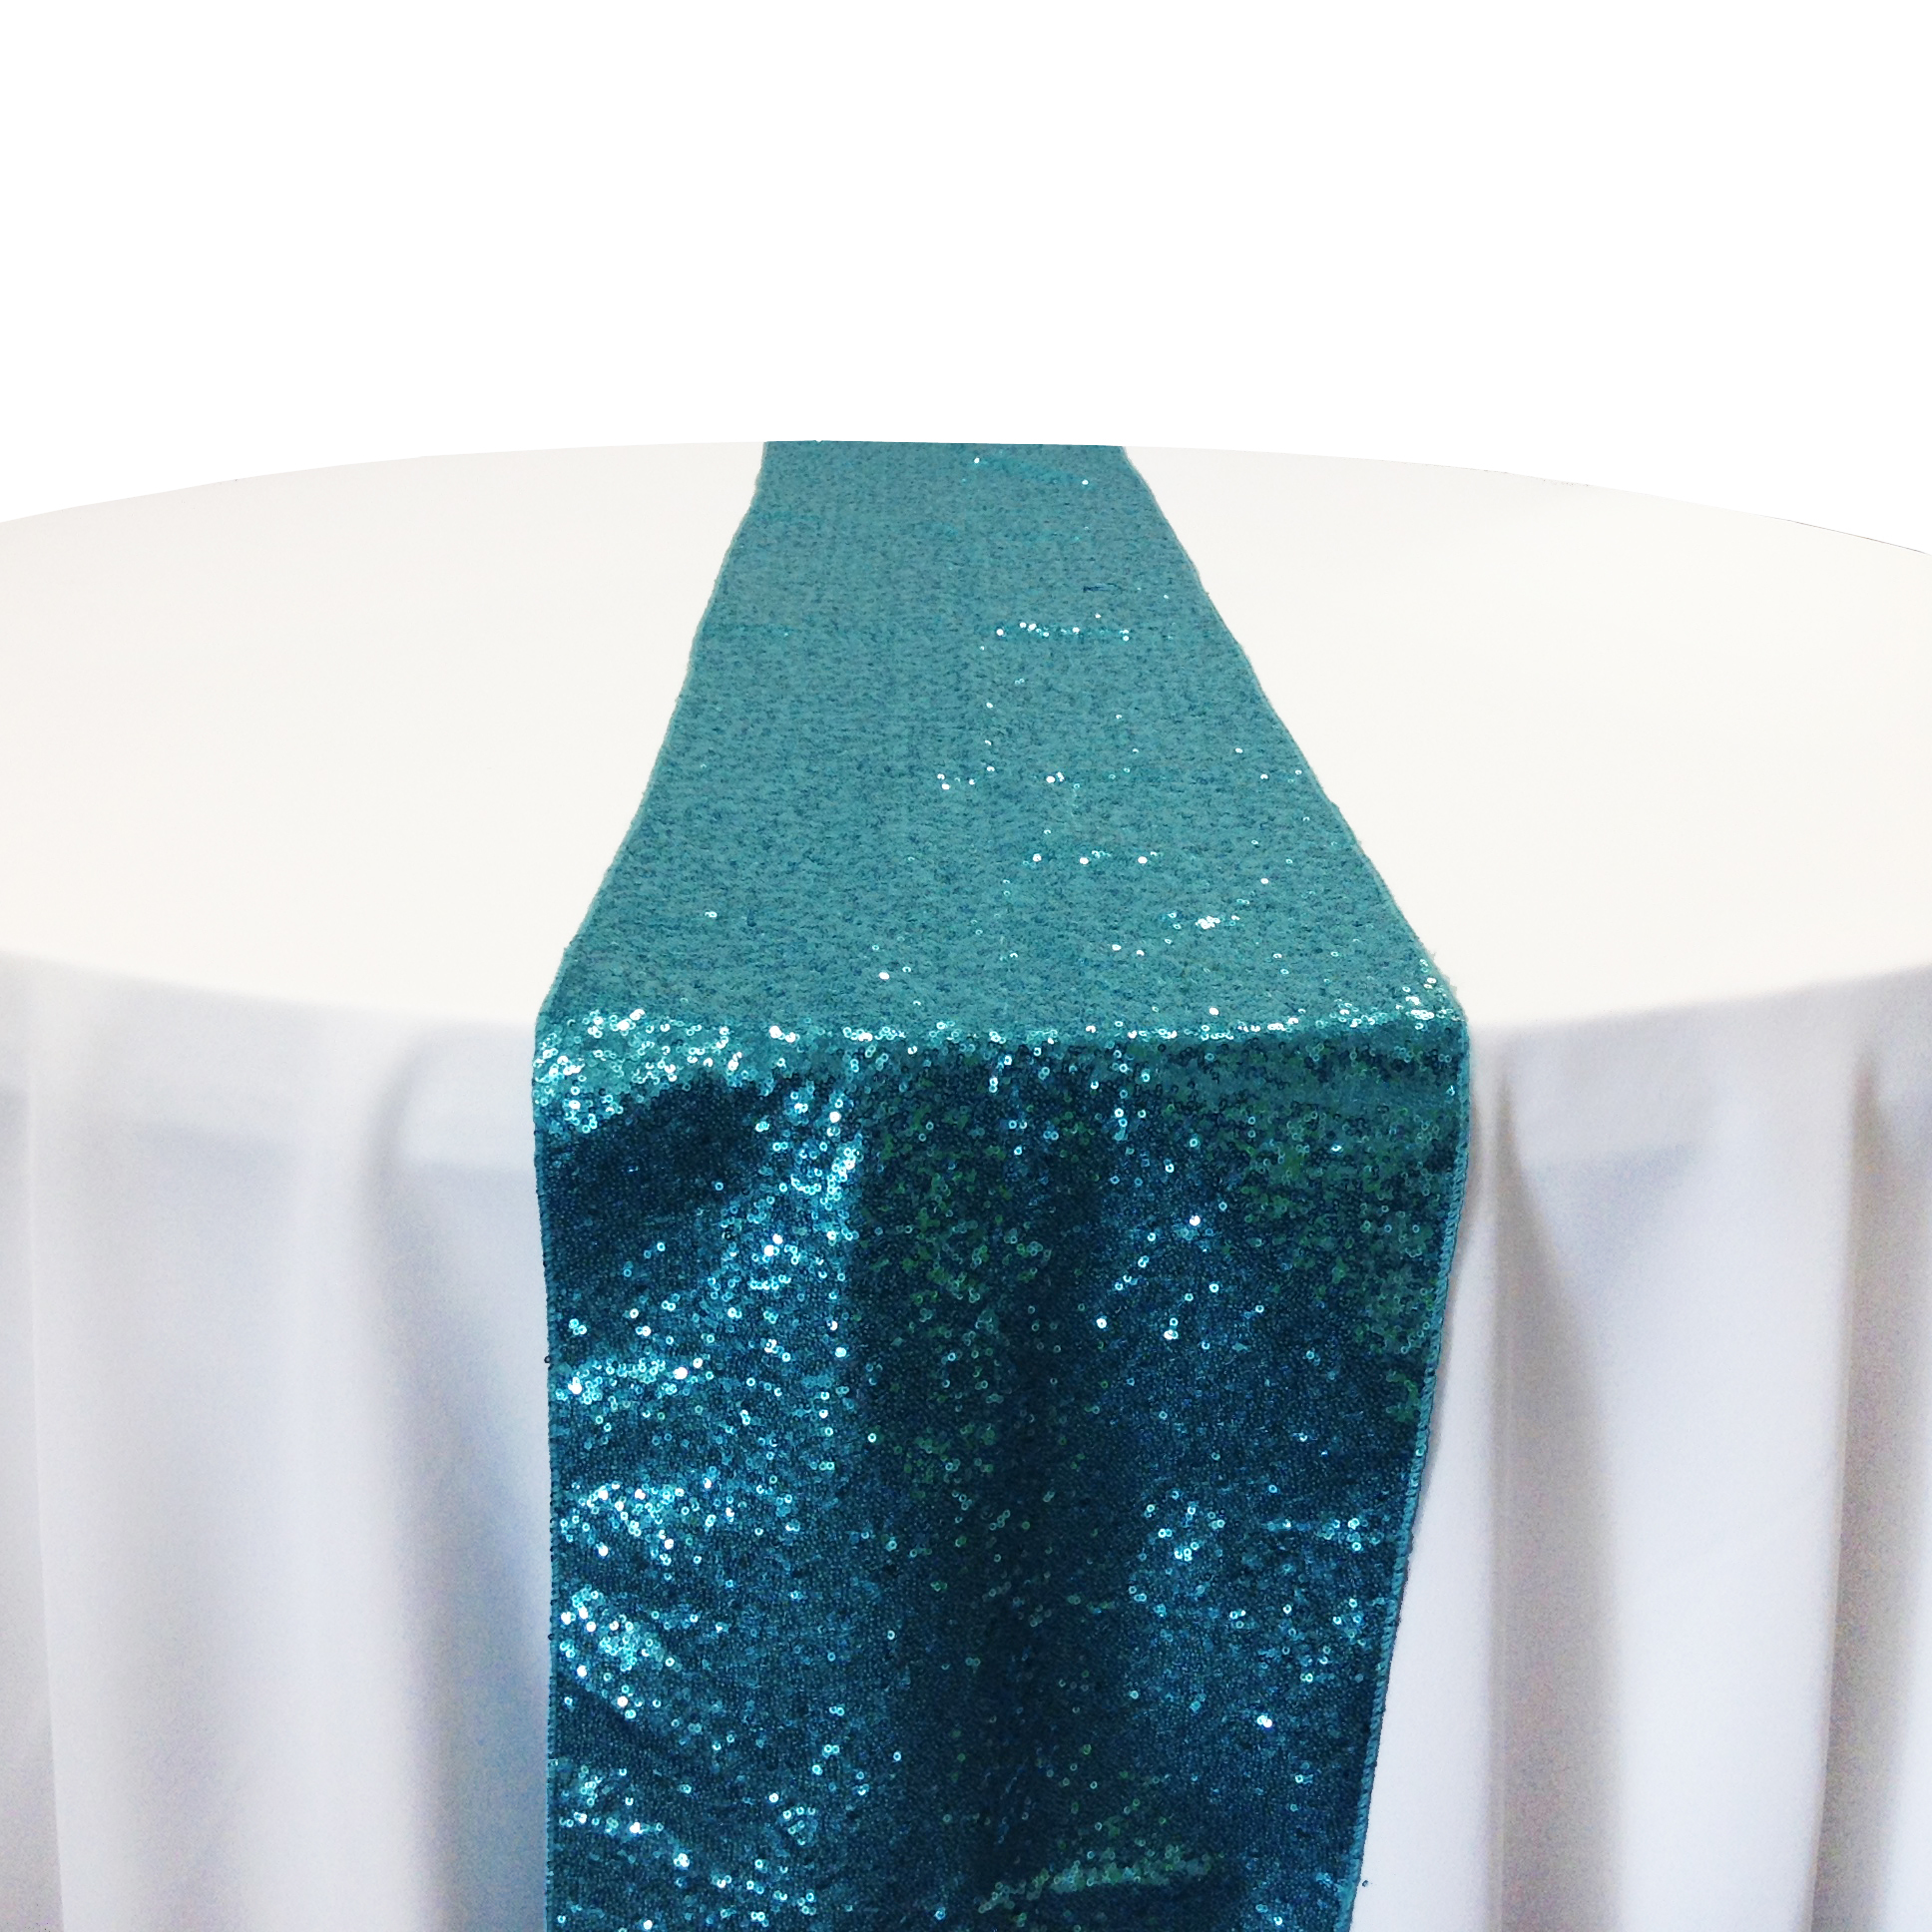 Turquoise Taffeta Sequin Table Runner Rental Turquoise Taffeta Glitz Table Runner Rental